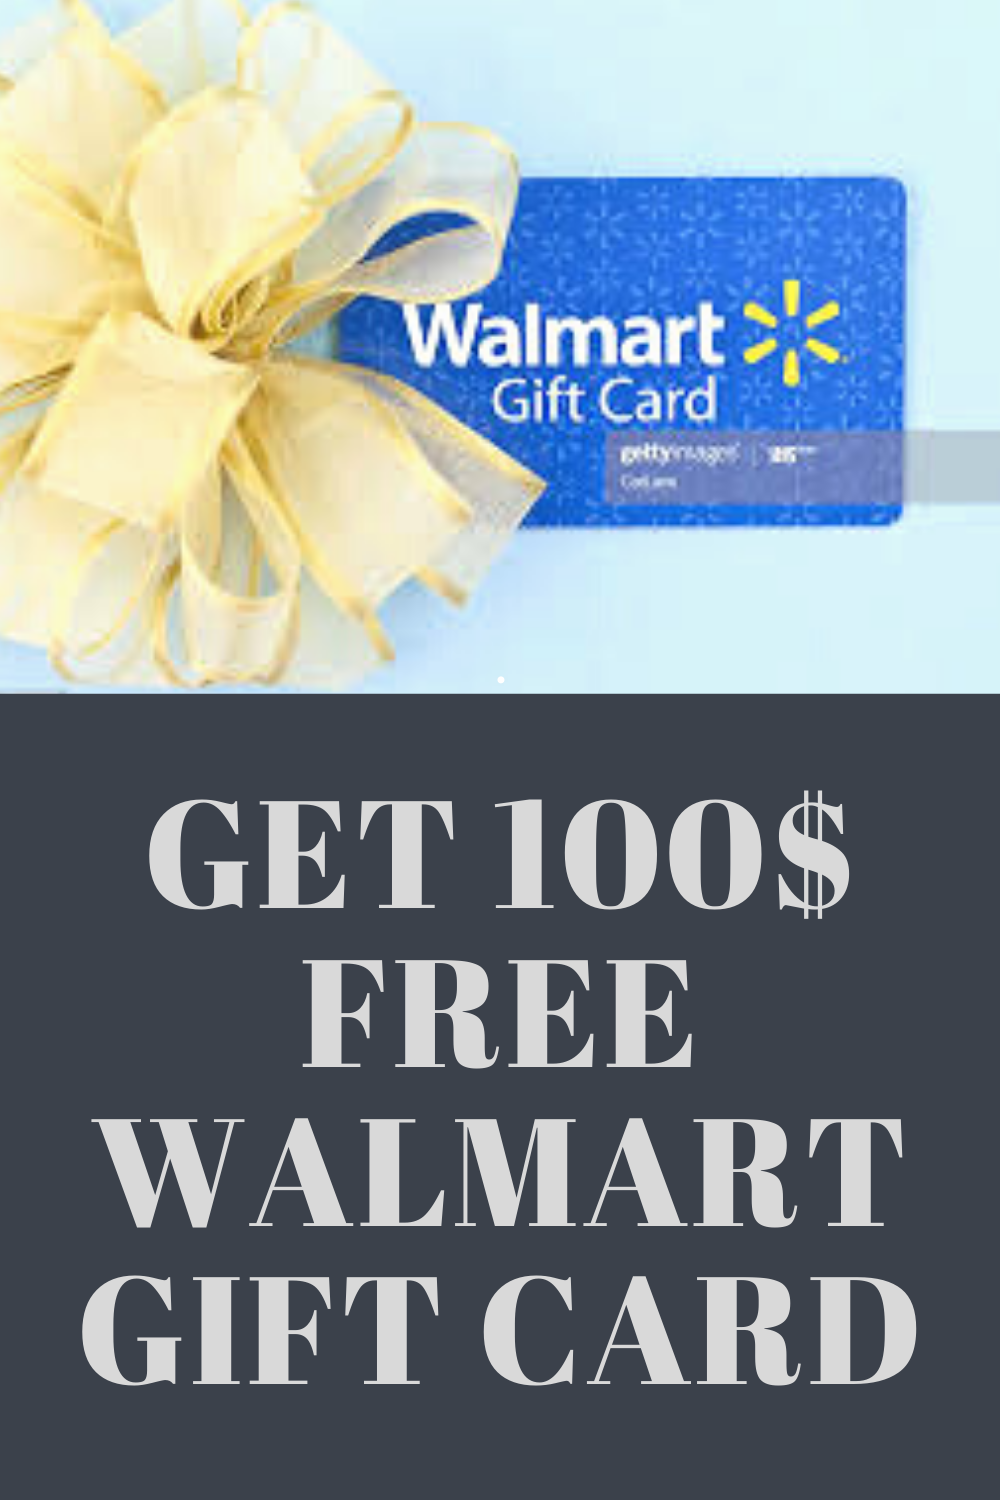 Photo of Walmart Free Gift Card